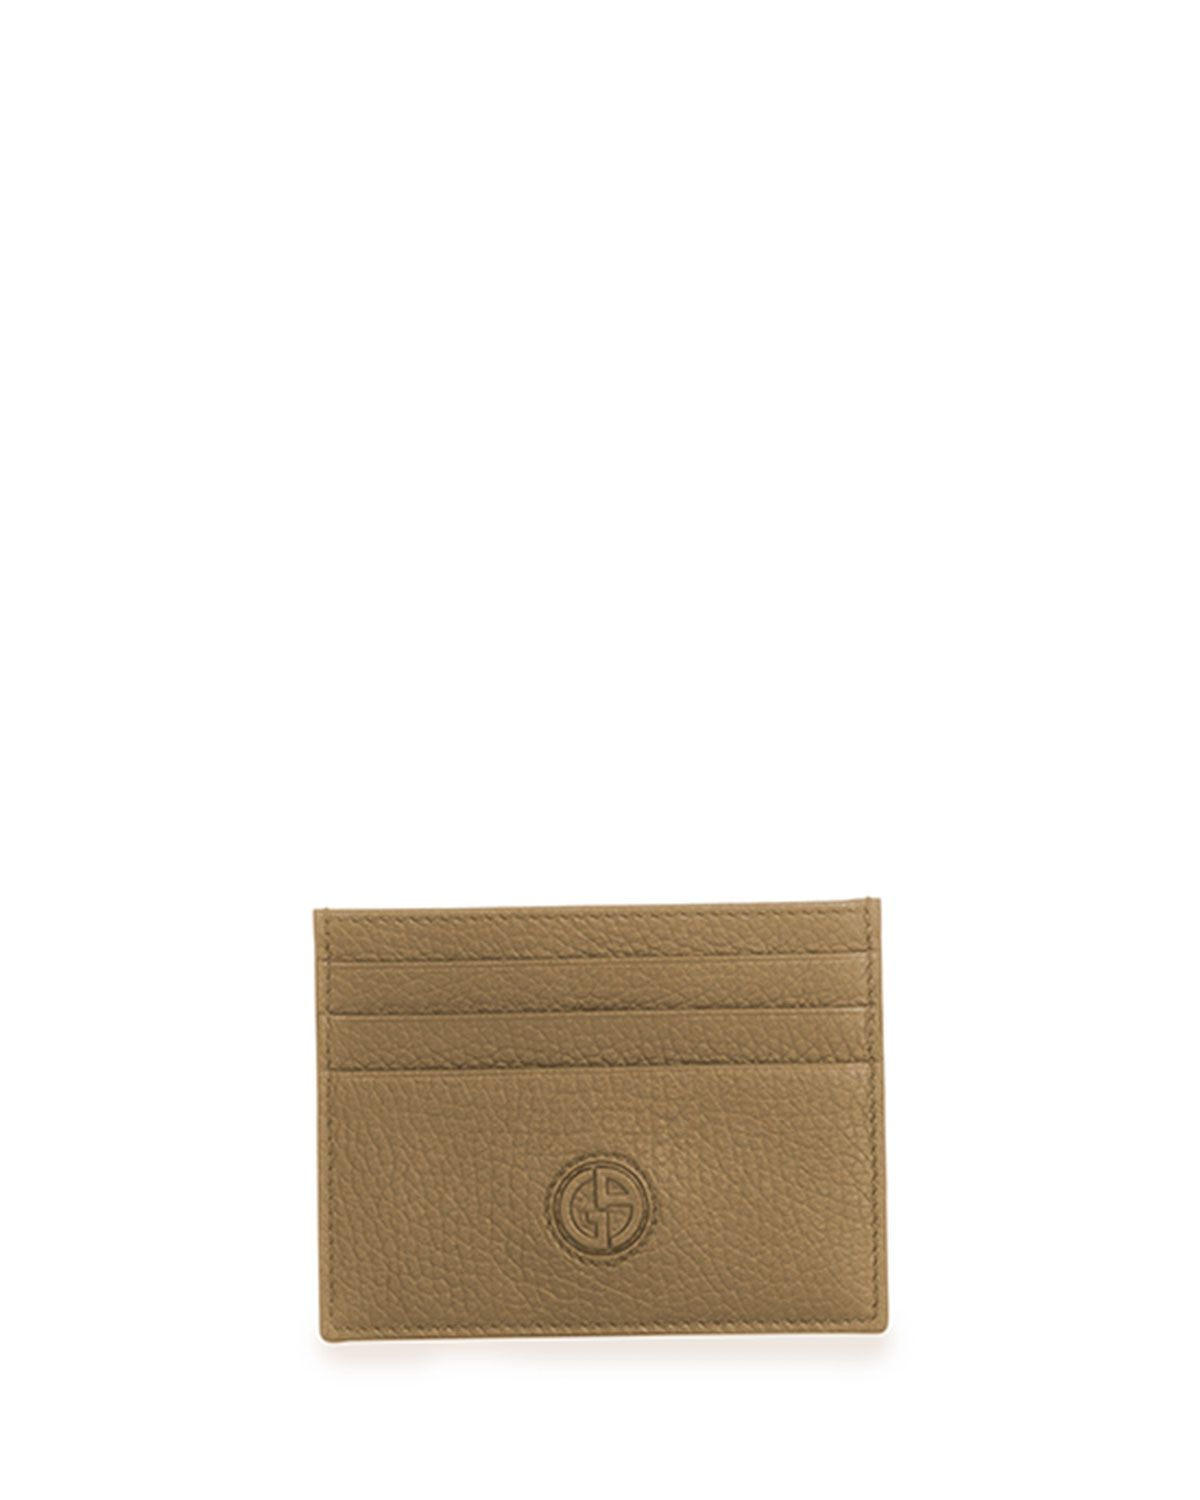 Textured Leather Card Holder Brown Giorgio Armani Card Case And